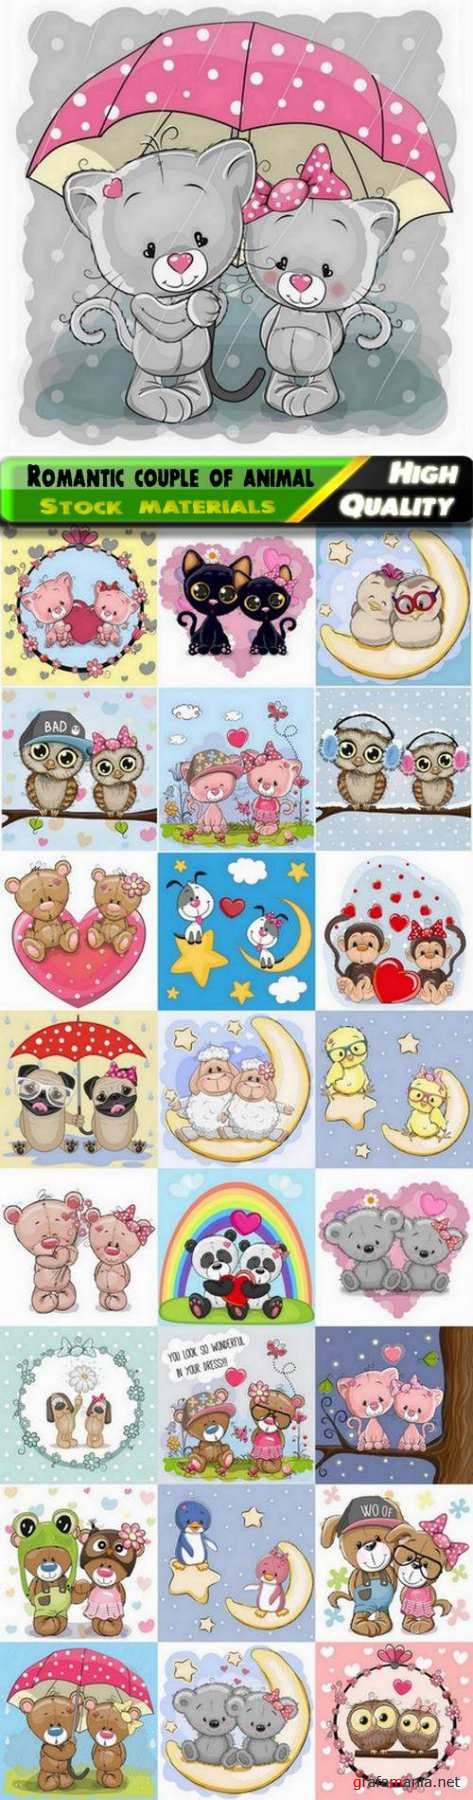 Cartoon animal romantic couple in love for valentines day card - 25 Eps